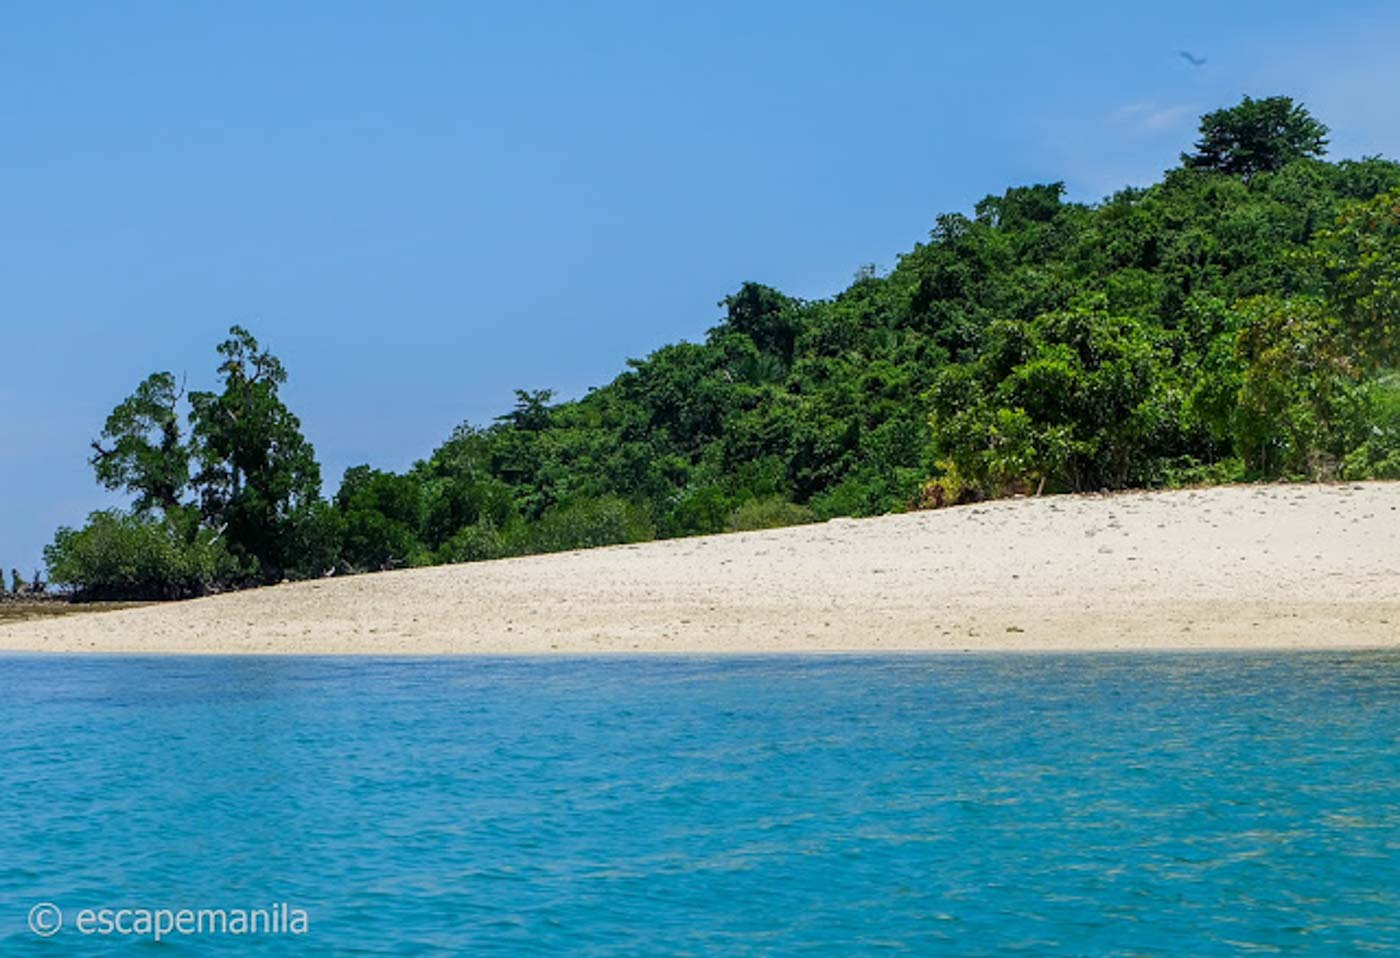 CLEAR WATERS. The island's waters are clean and crystal-clear. This is Baung-Baung Island. Photo by Glen Santillan